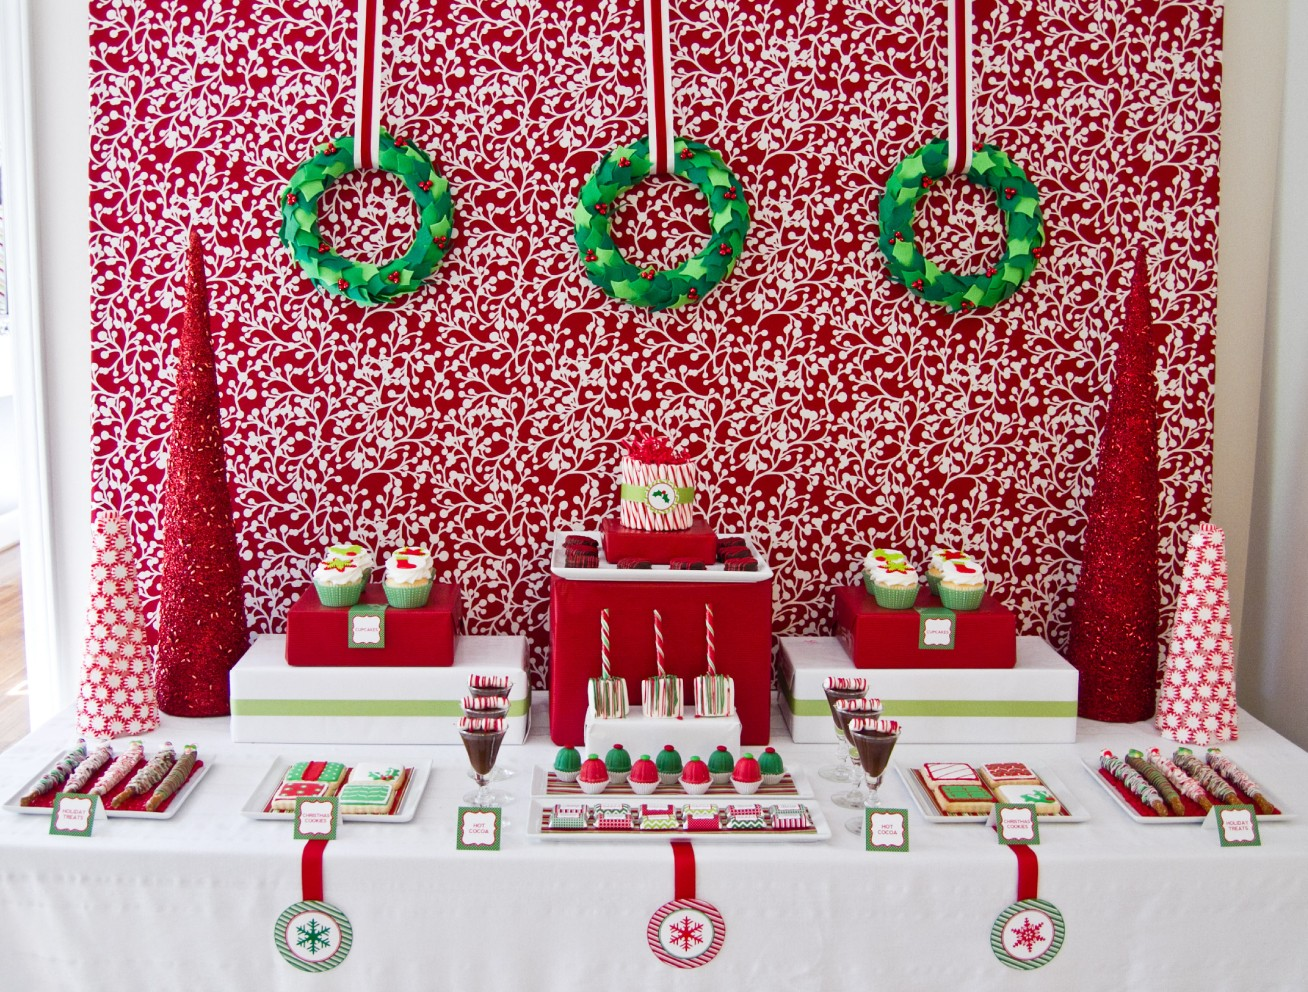 MON TRESOR Christmas Tables amp Inspirations